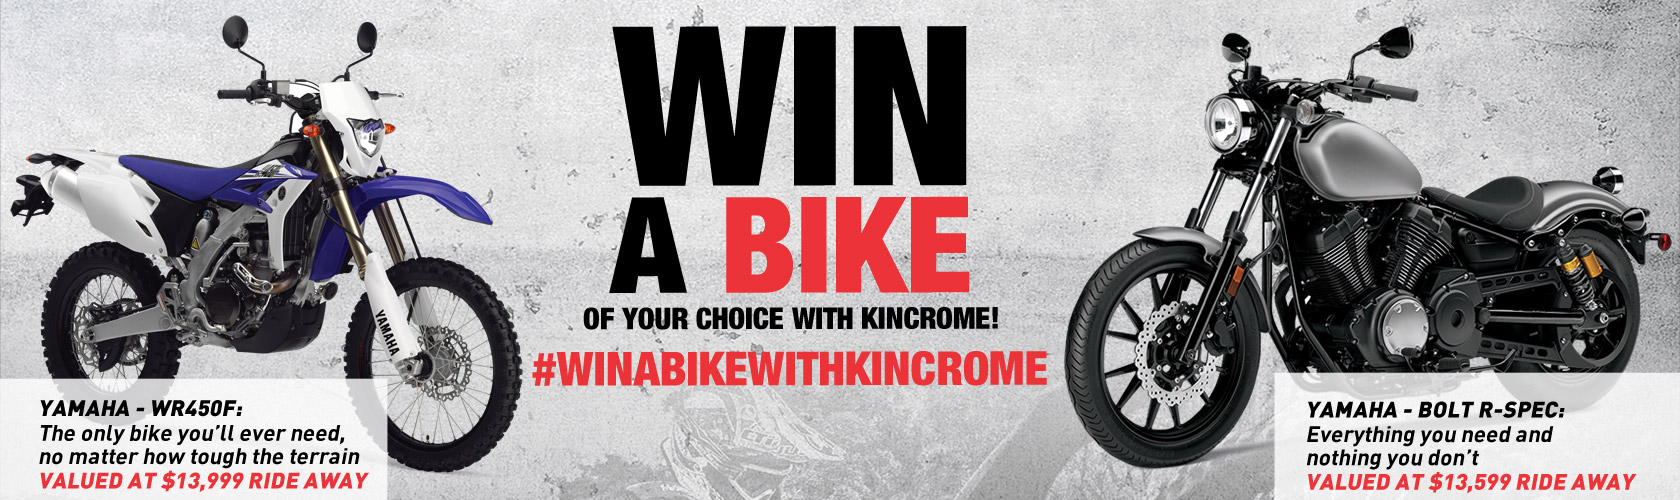 Win a Bike with Kincrome